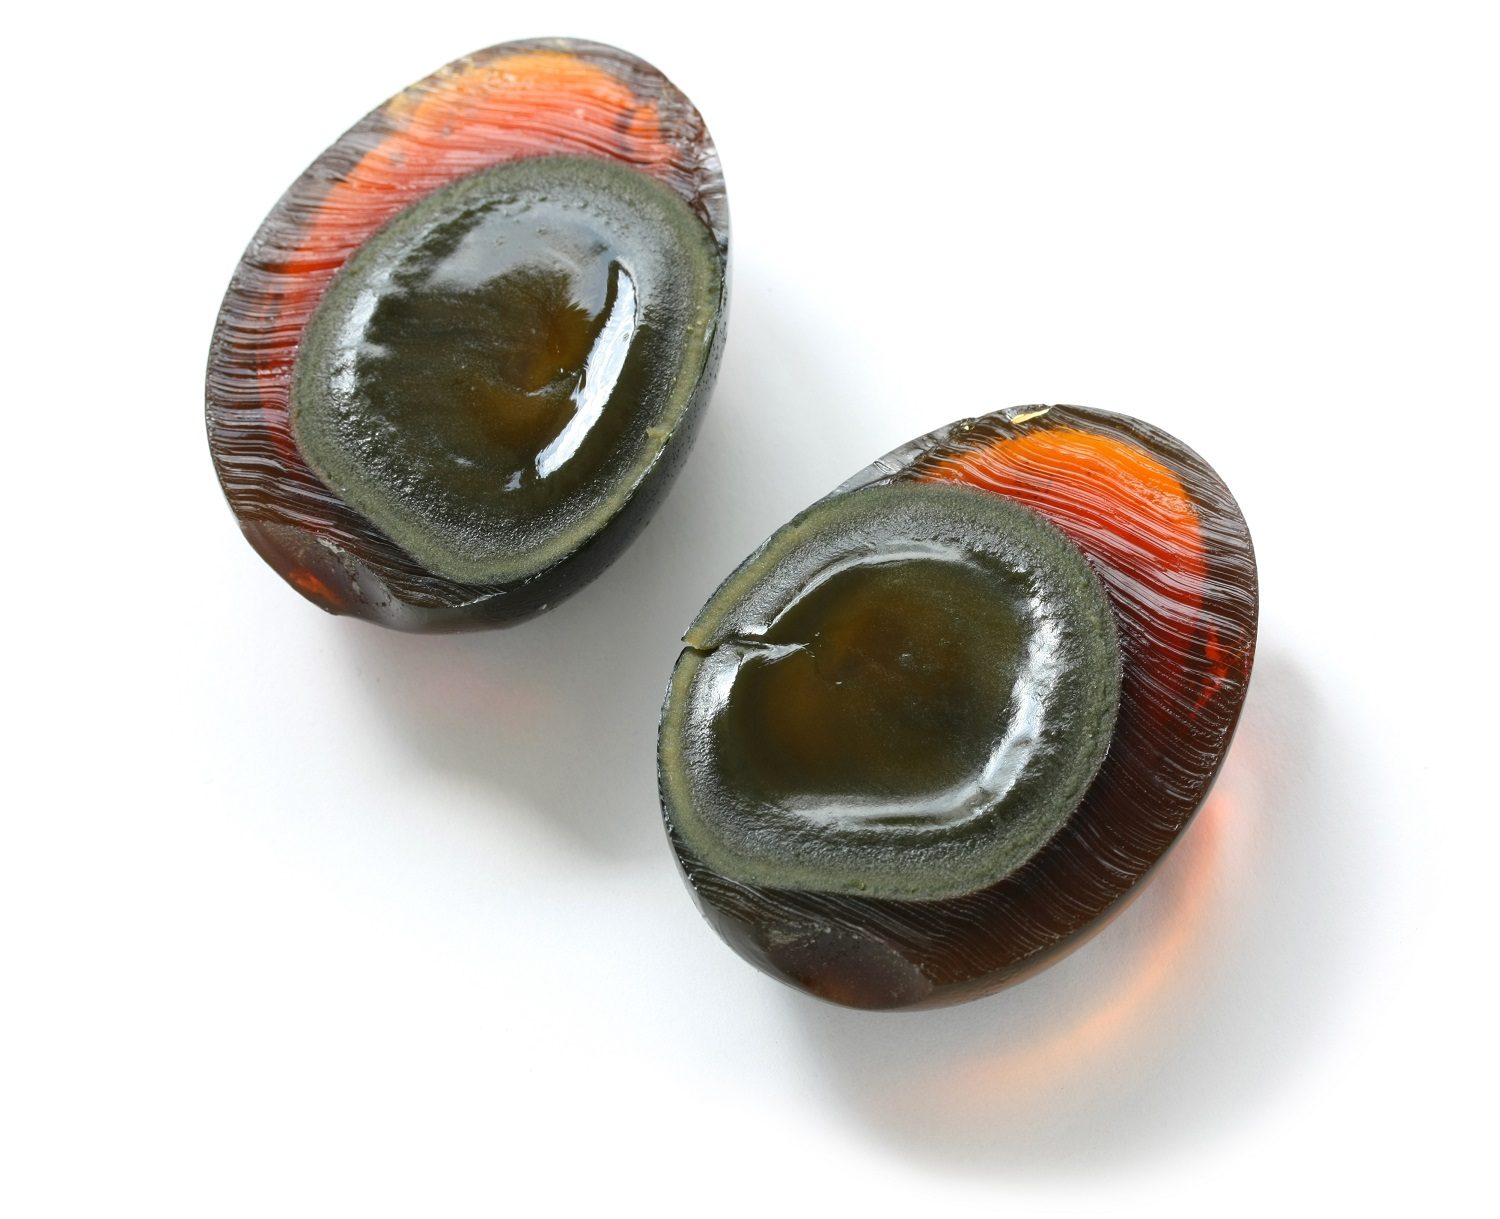 Century Egg, Mmmmmm Old Nasty Egg!